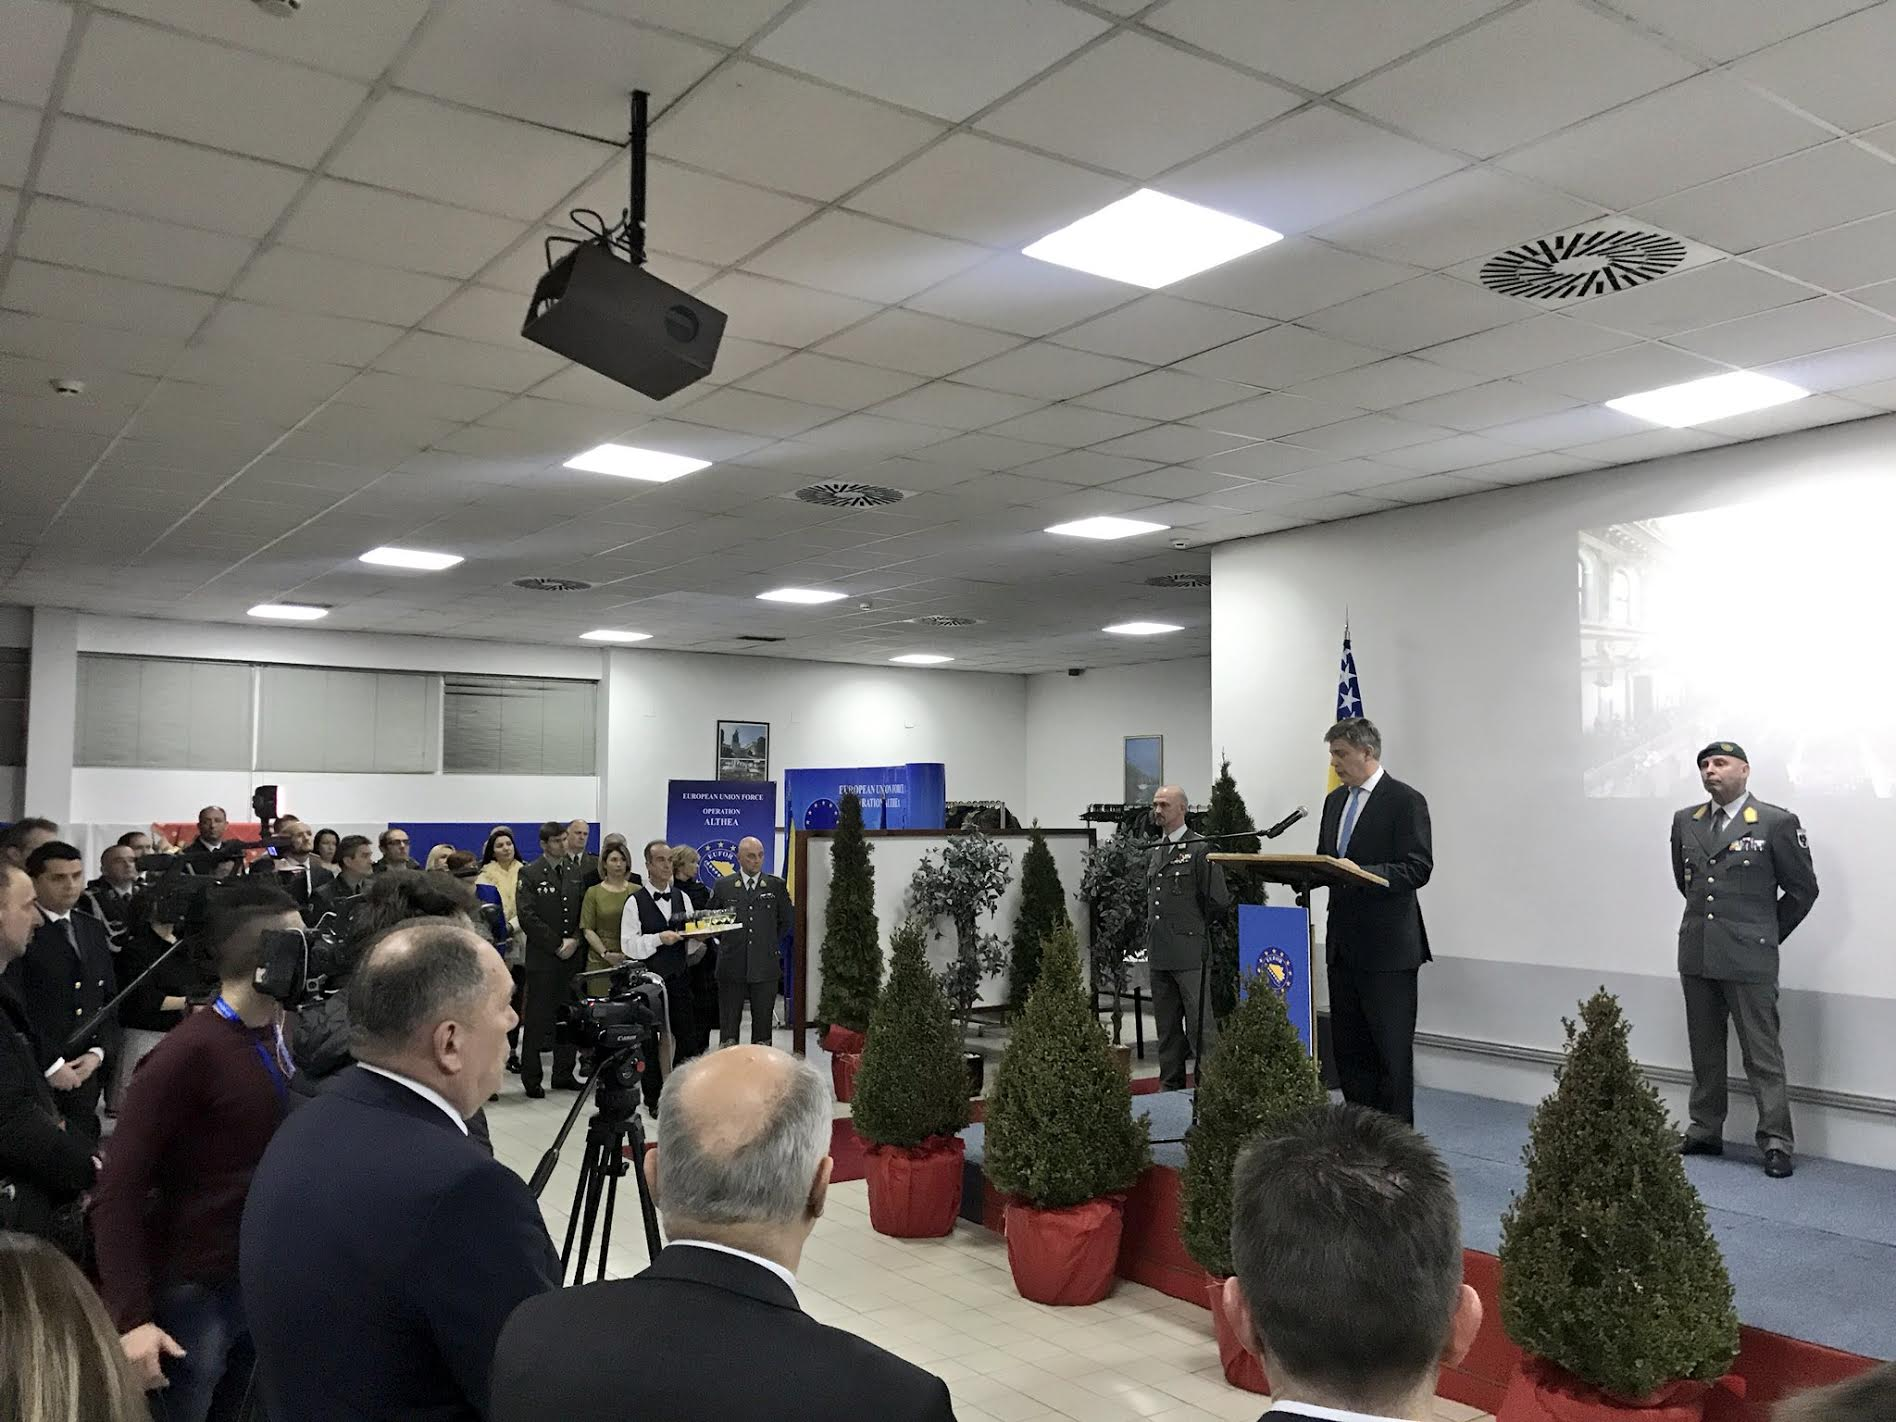 EU to announce new strategy for Western Balkans in February